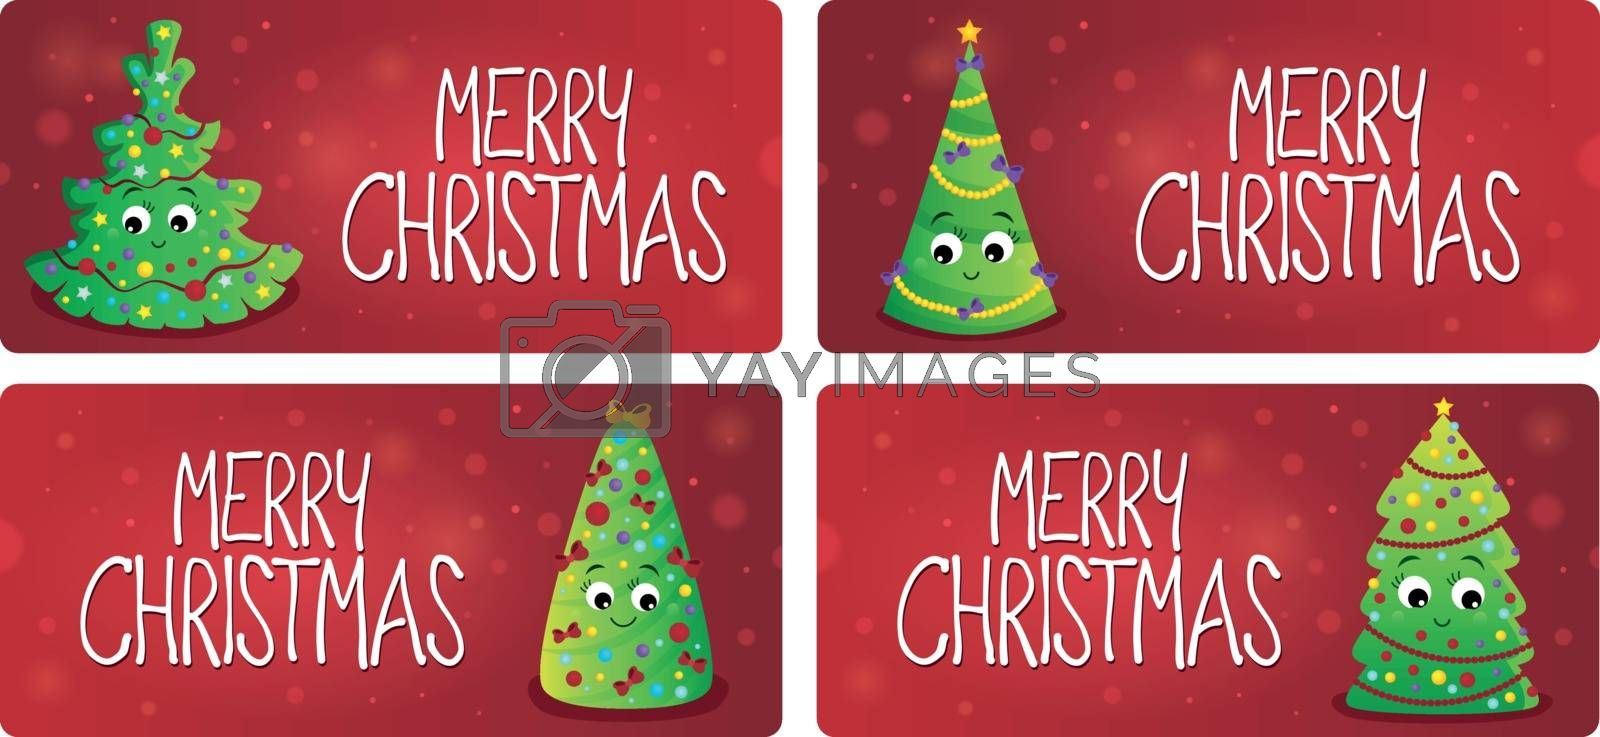 Merry Christmas theme cards 1 - eps10 vector illustration.